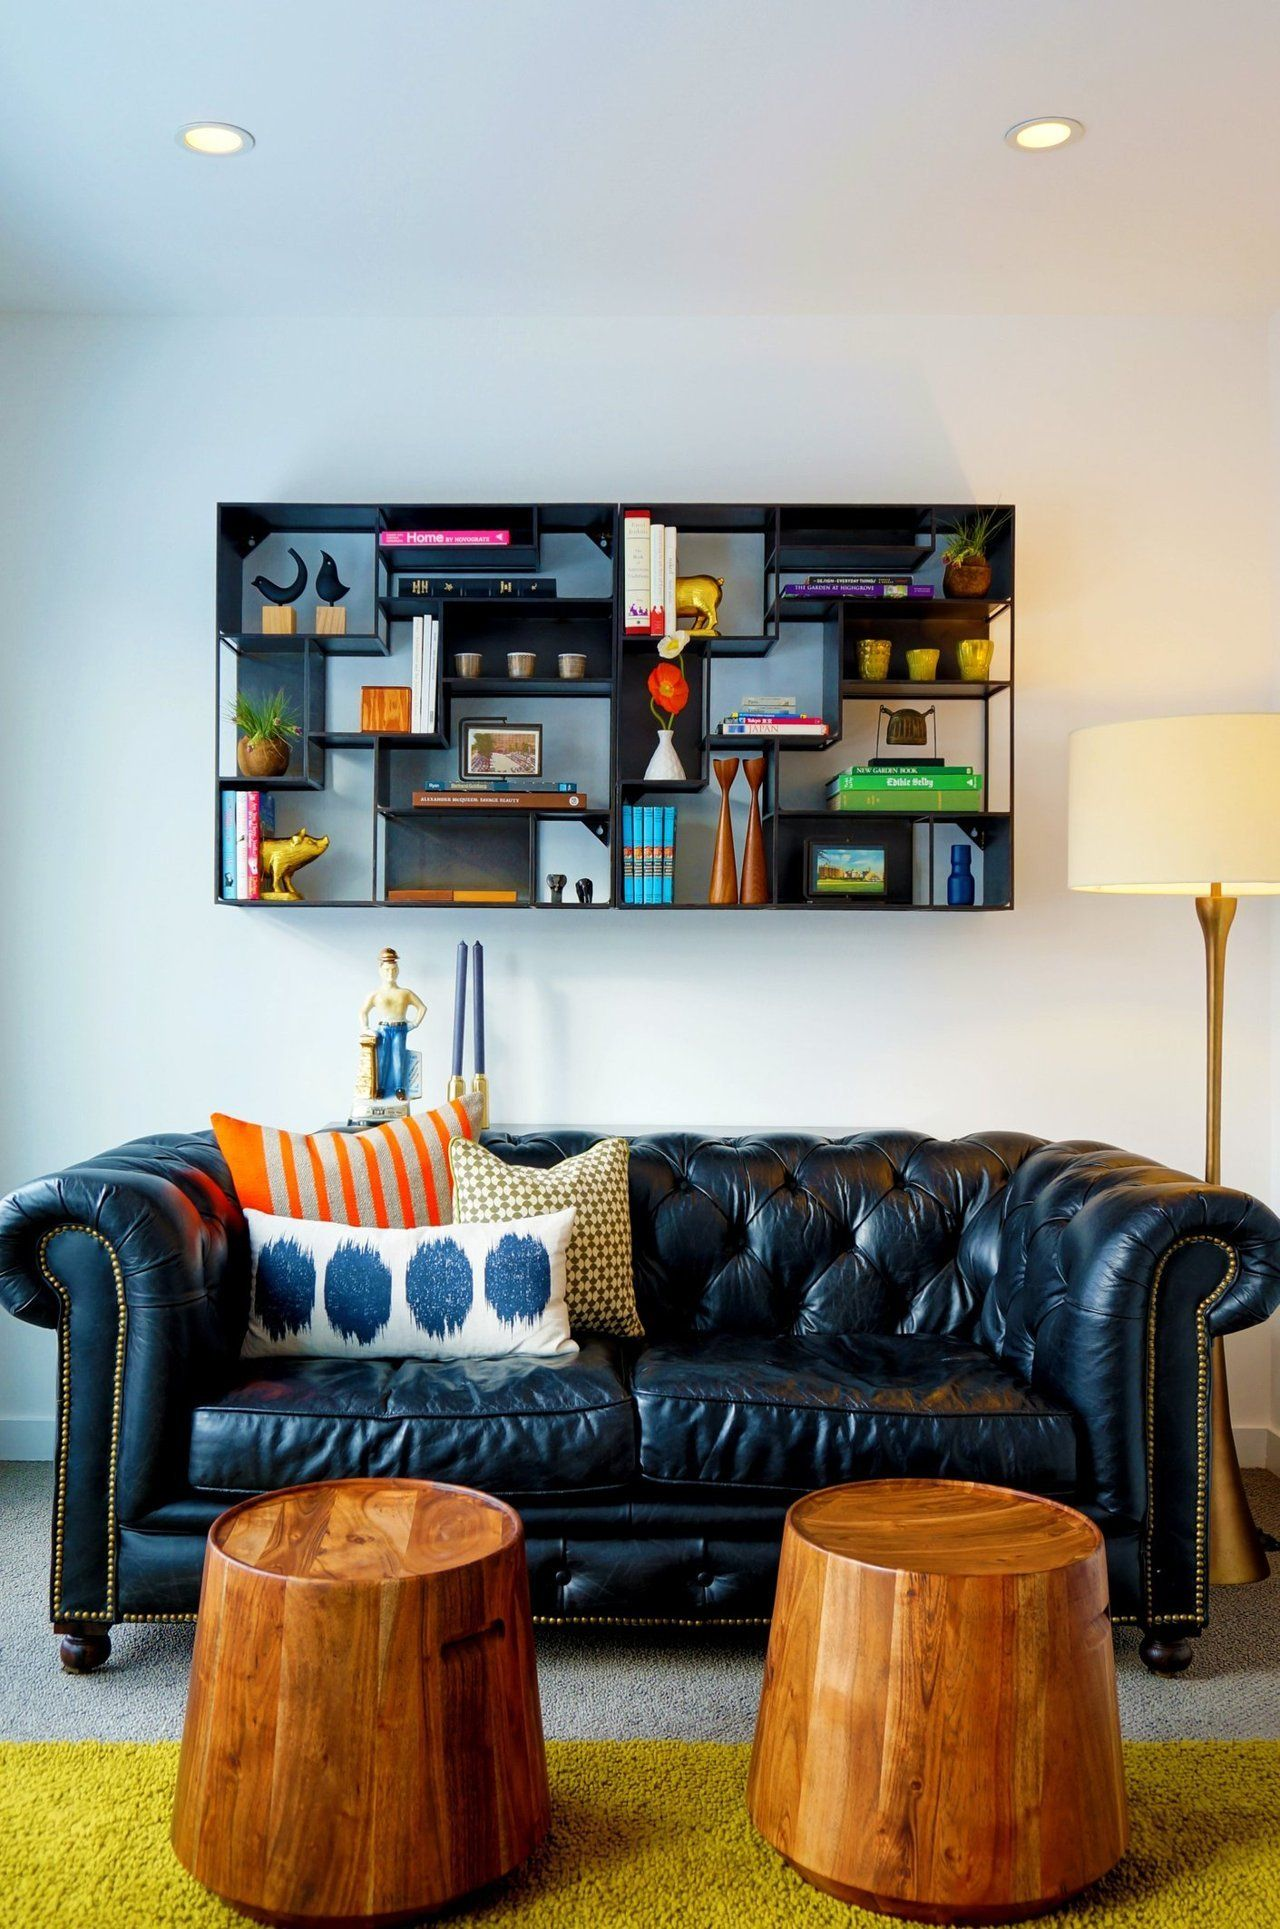 Chad And Daves Modern Dream Home Cool Shelving Unit For